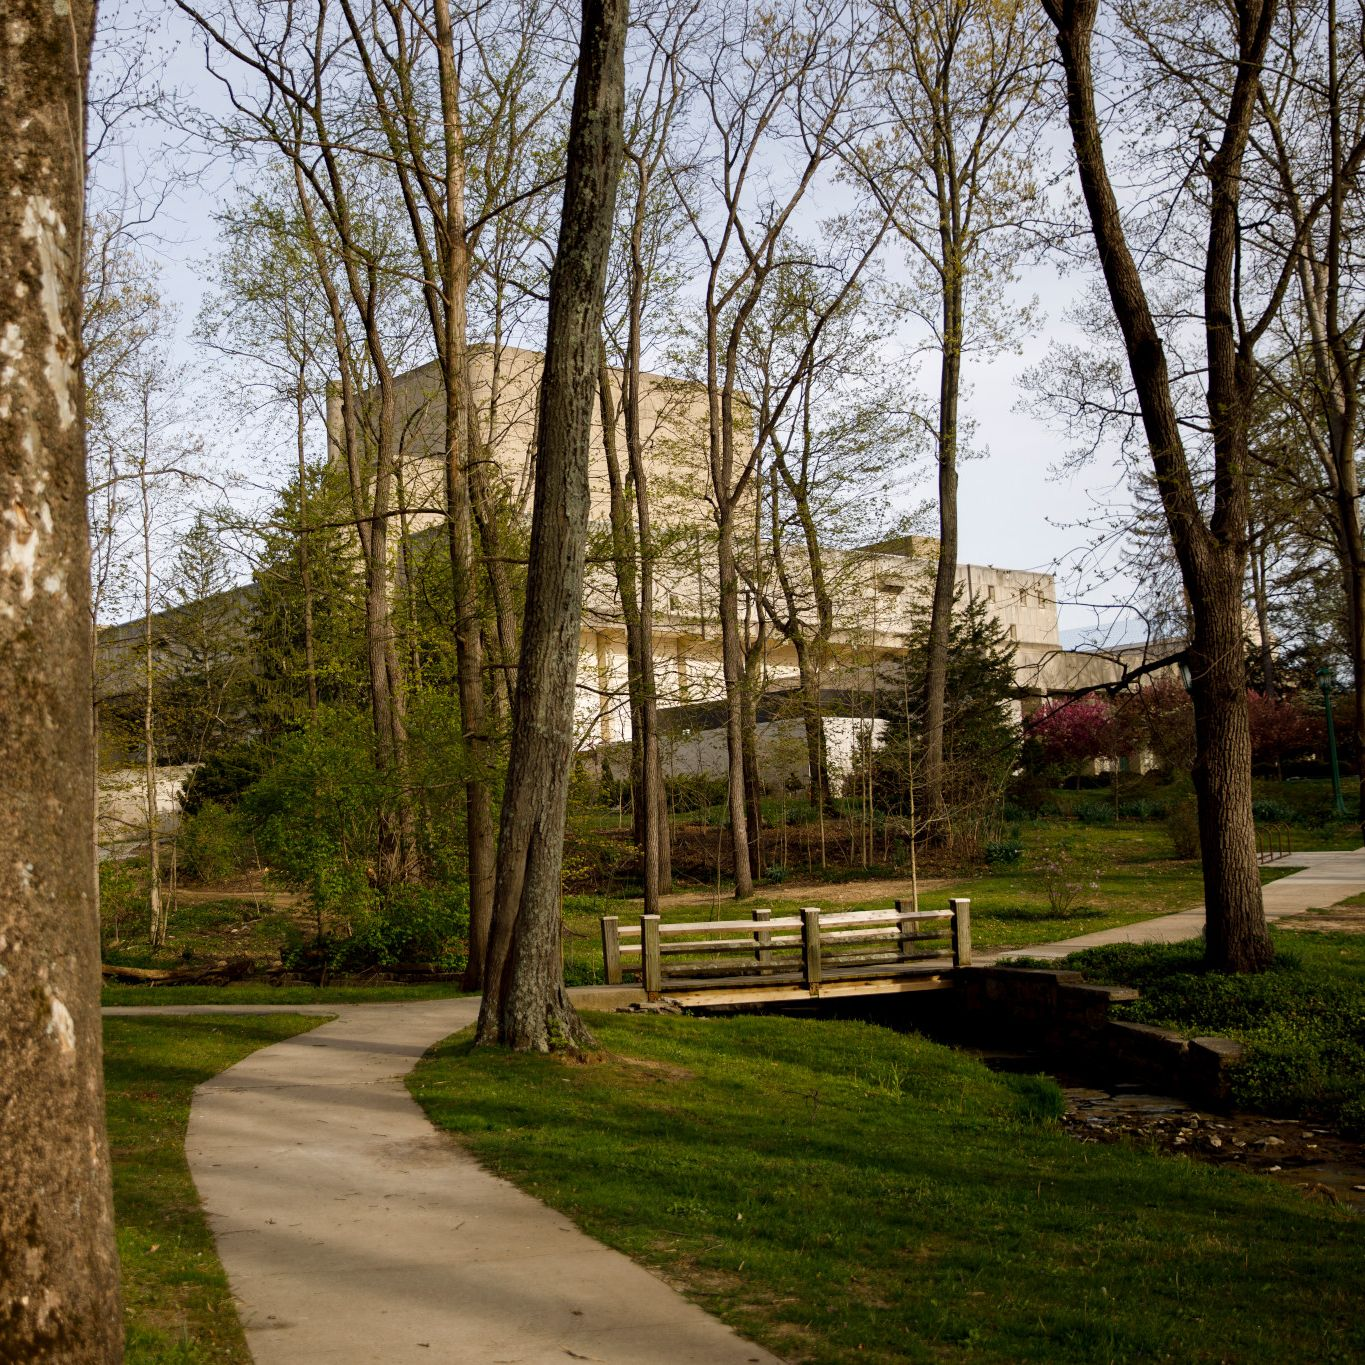 The Musical Arts Center viewed through a wooded area.